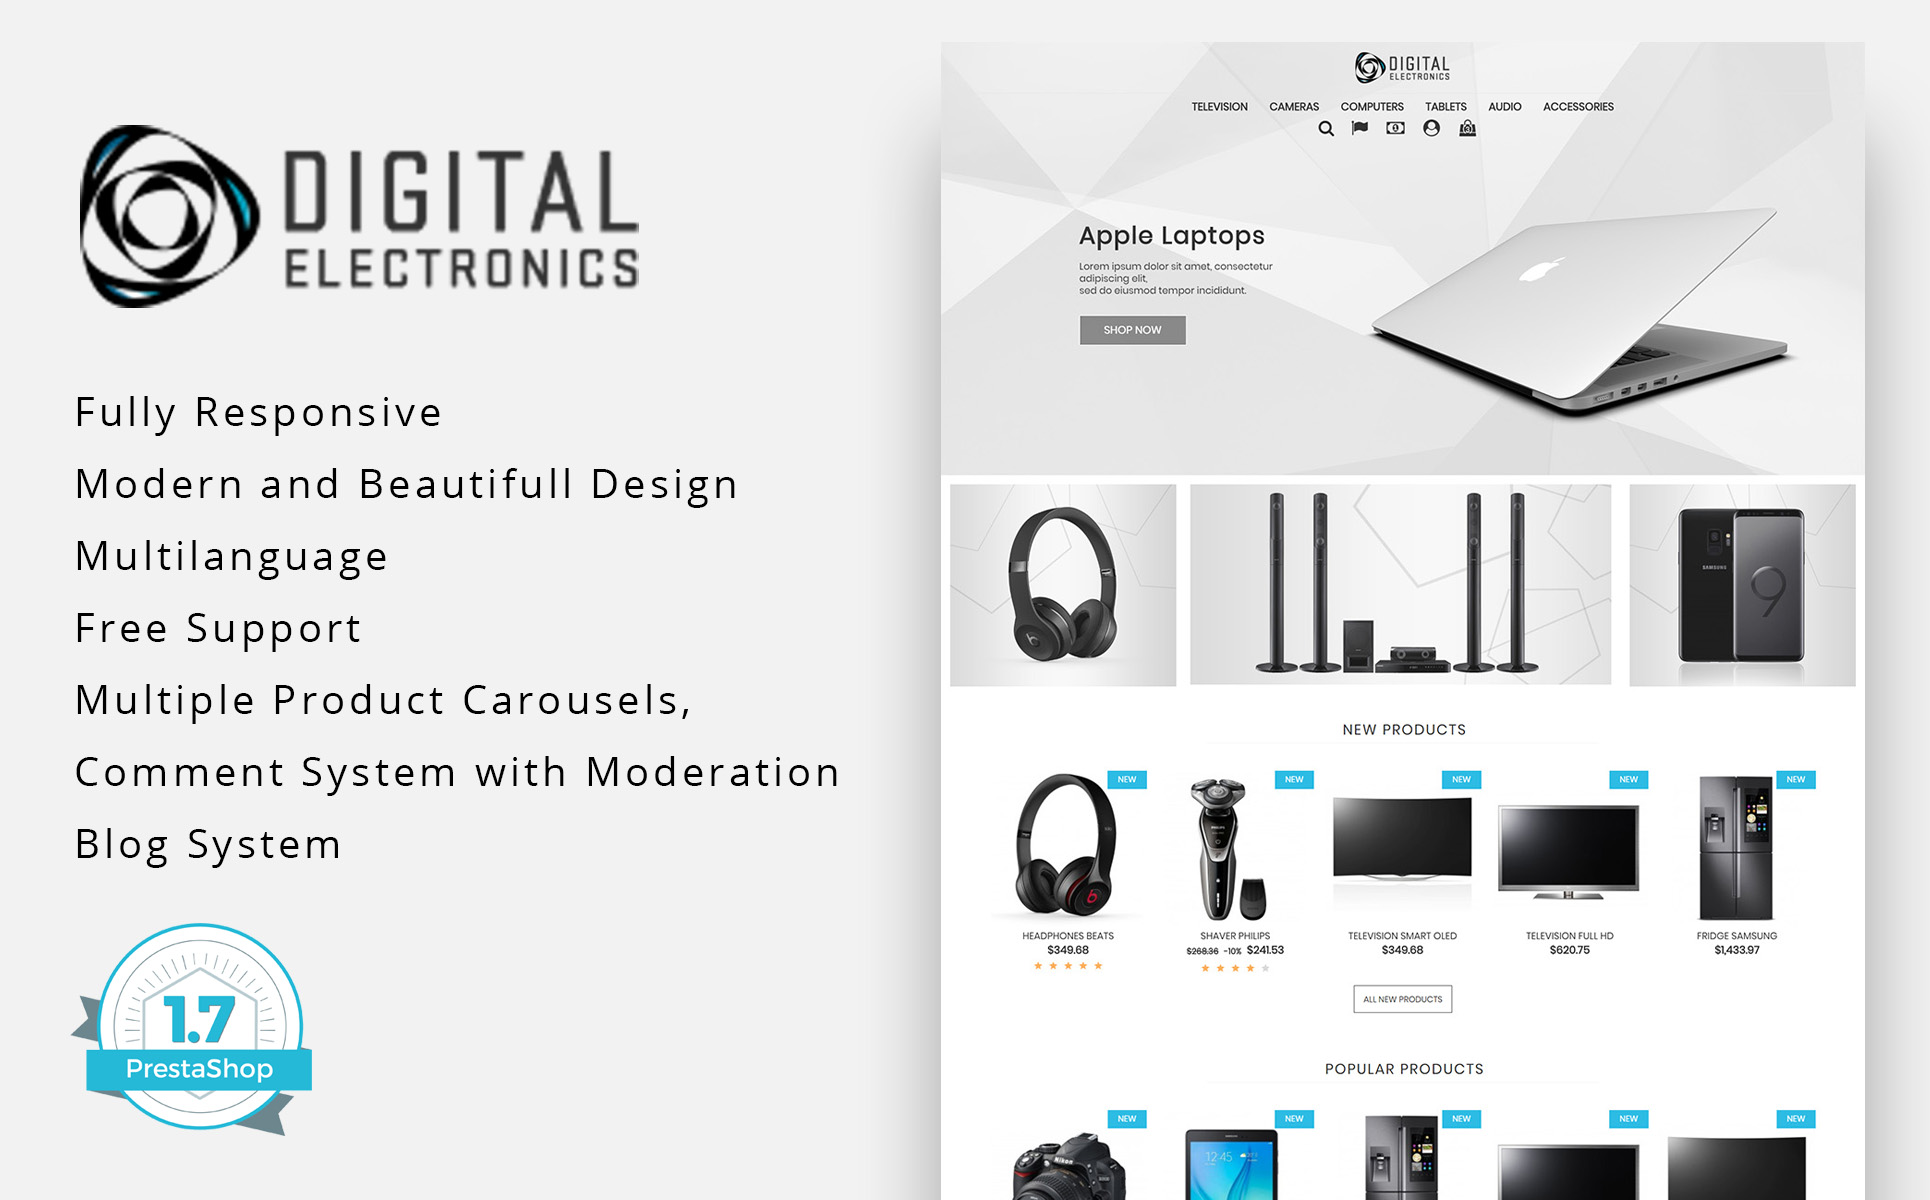 Digital Electronics Store 1.7 PrestaShop Theme